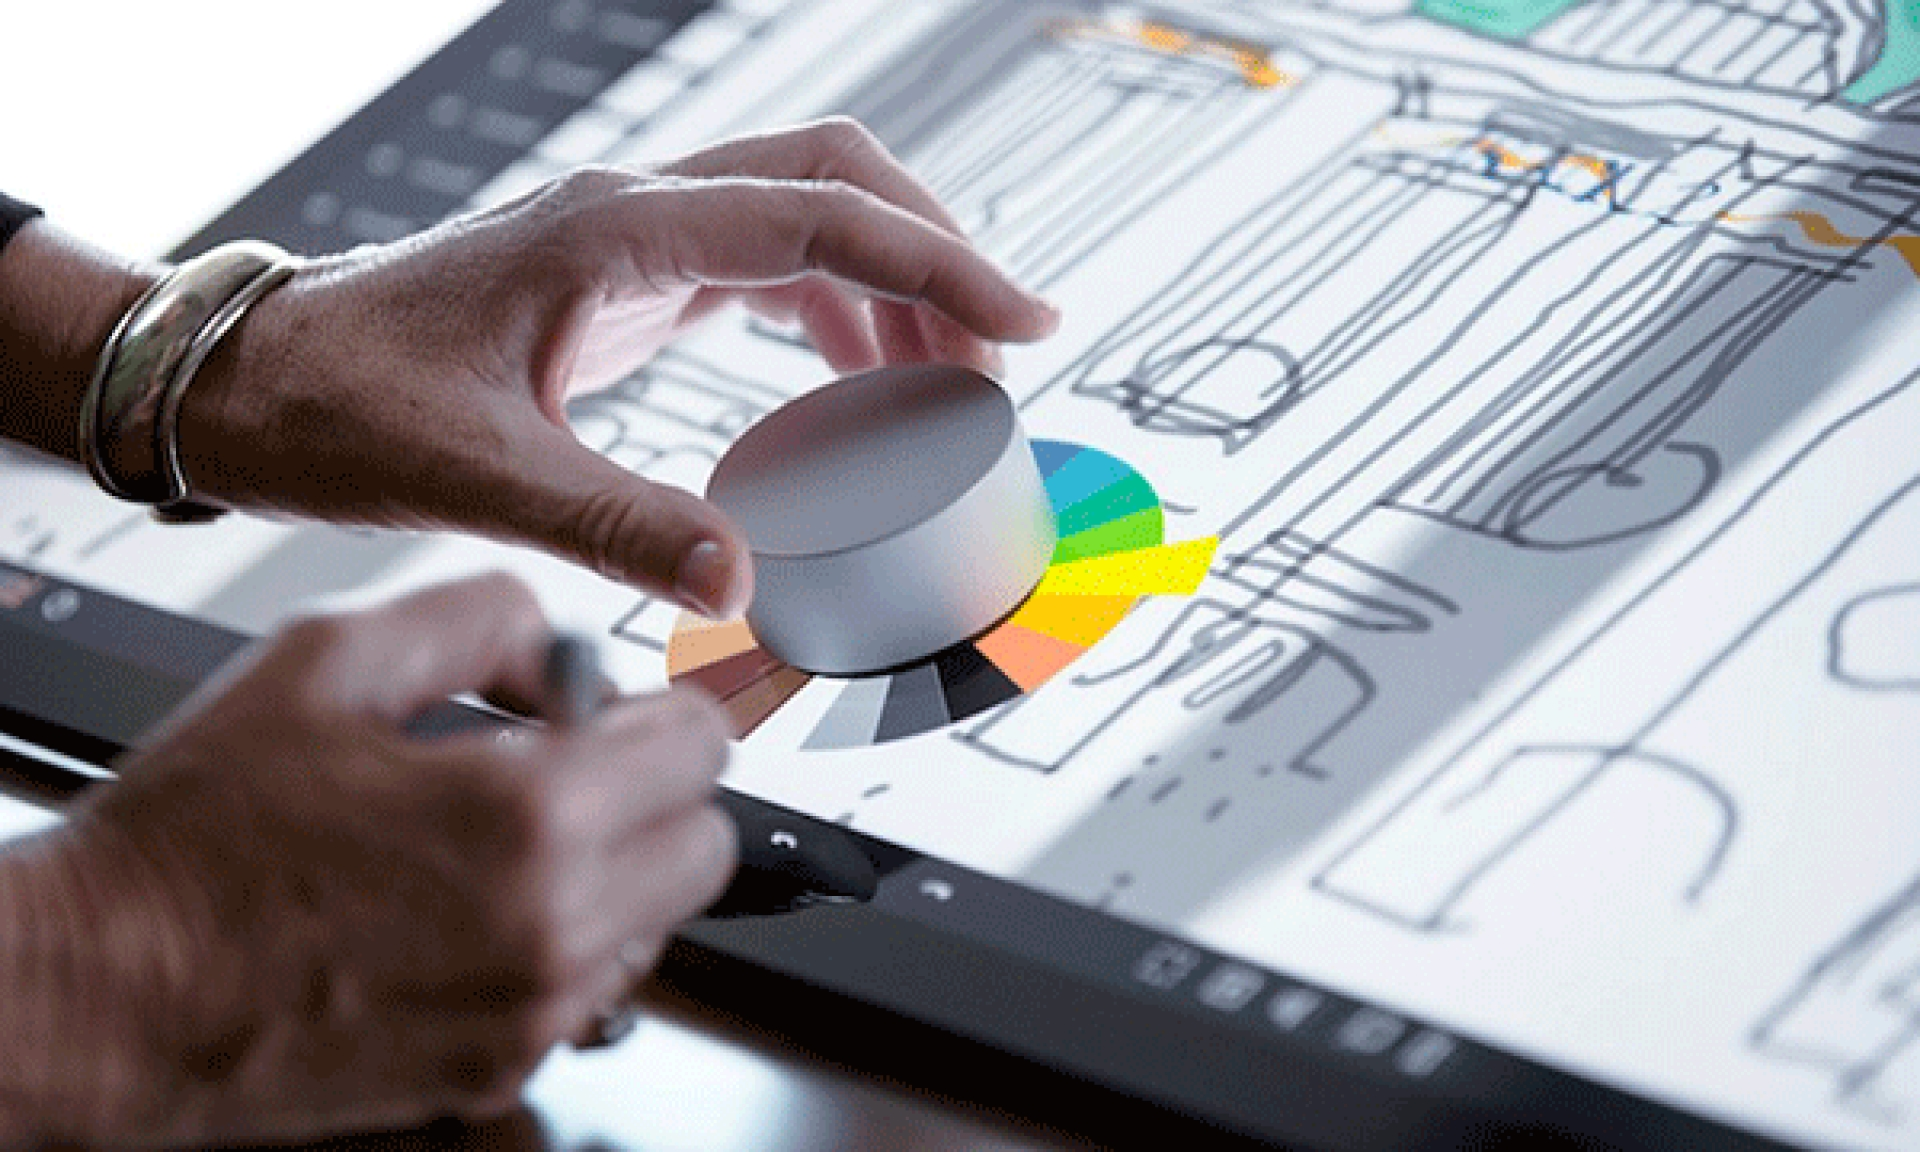 New Surface Studio Desktop PC by Microsoft: Why you need it